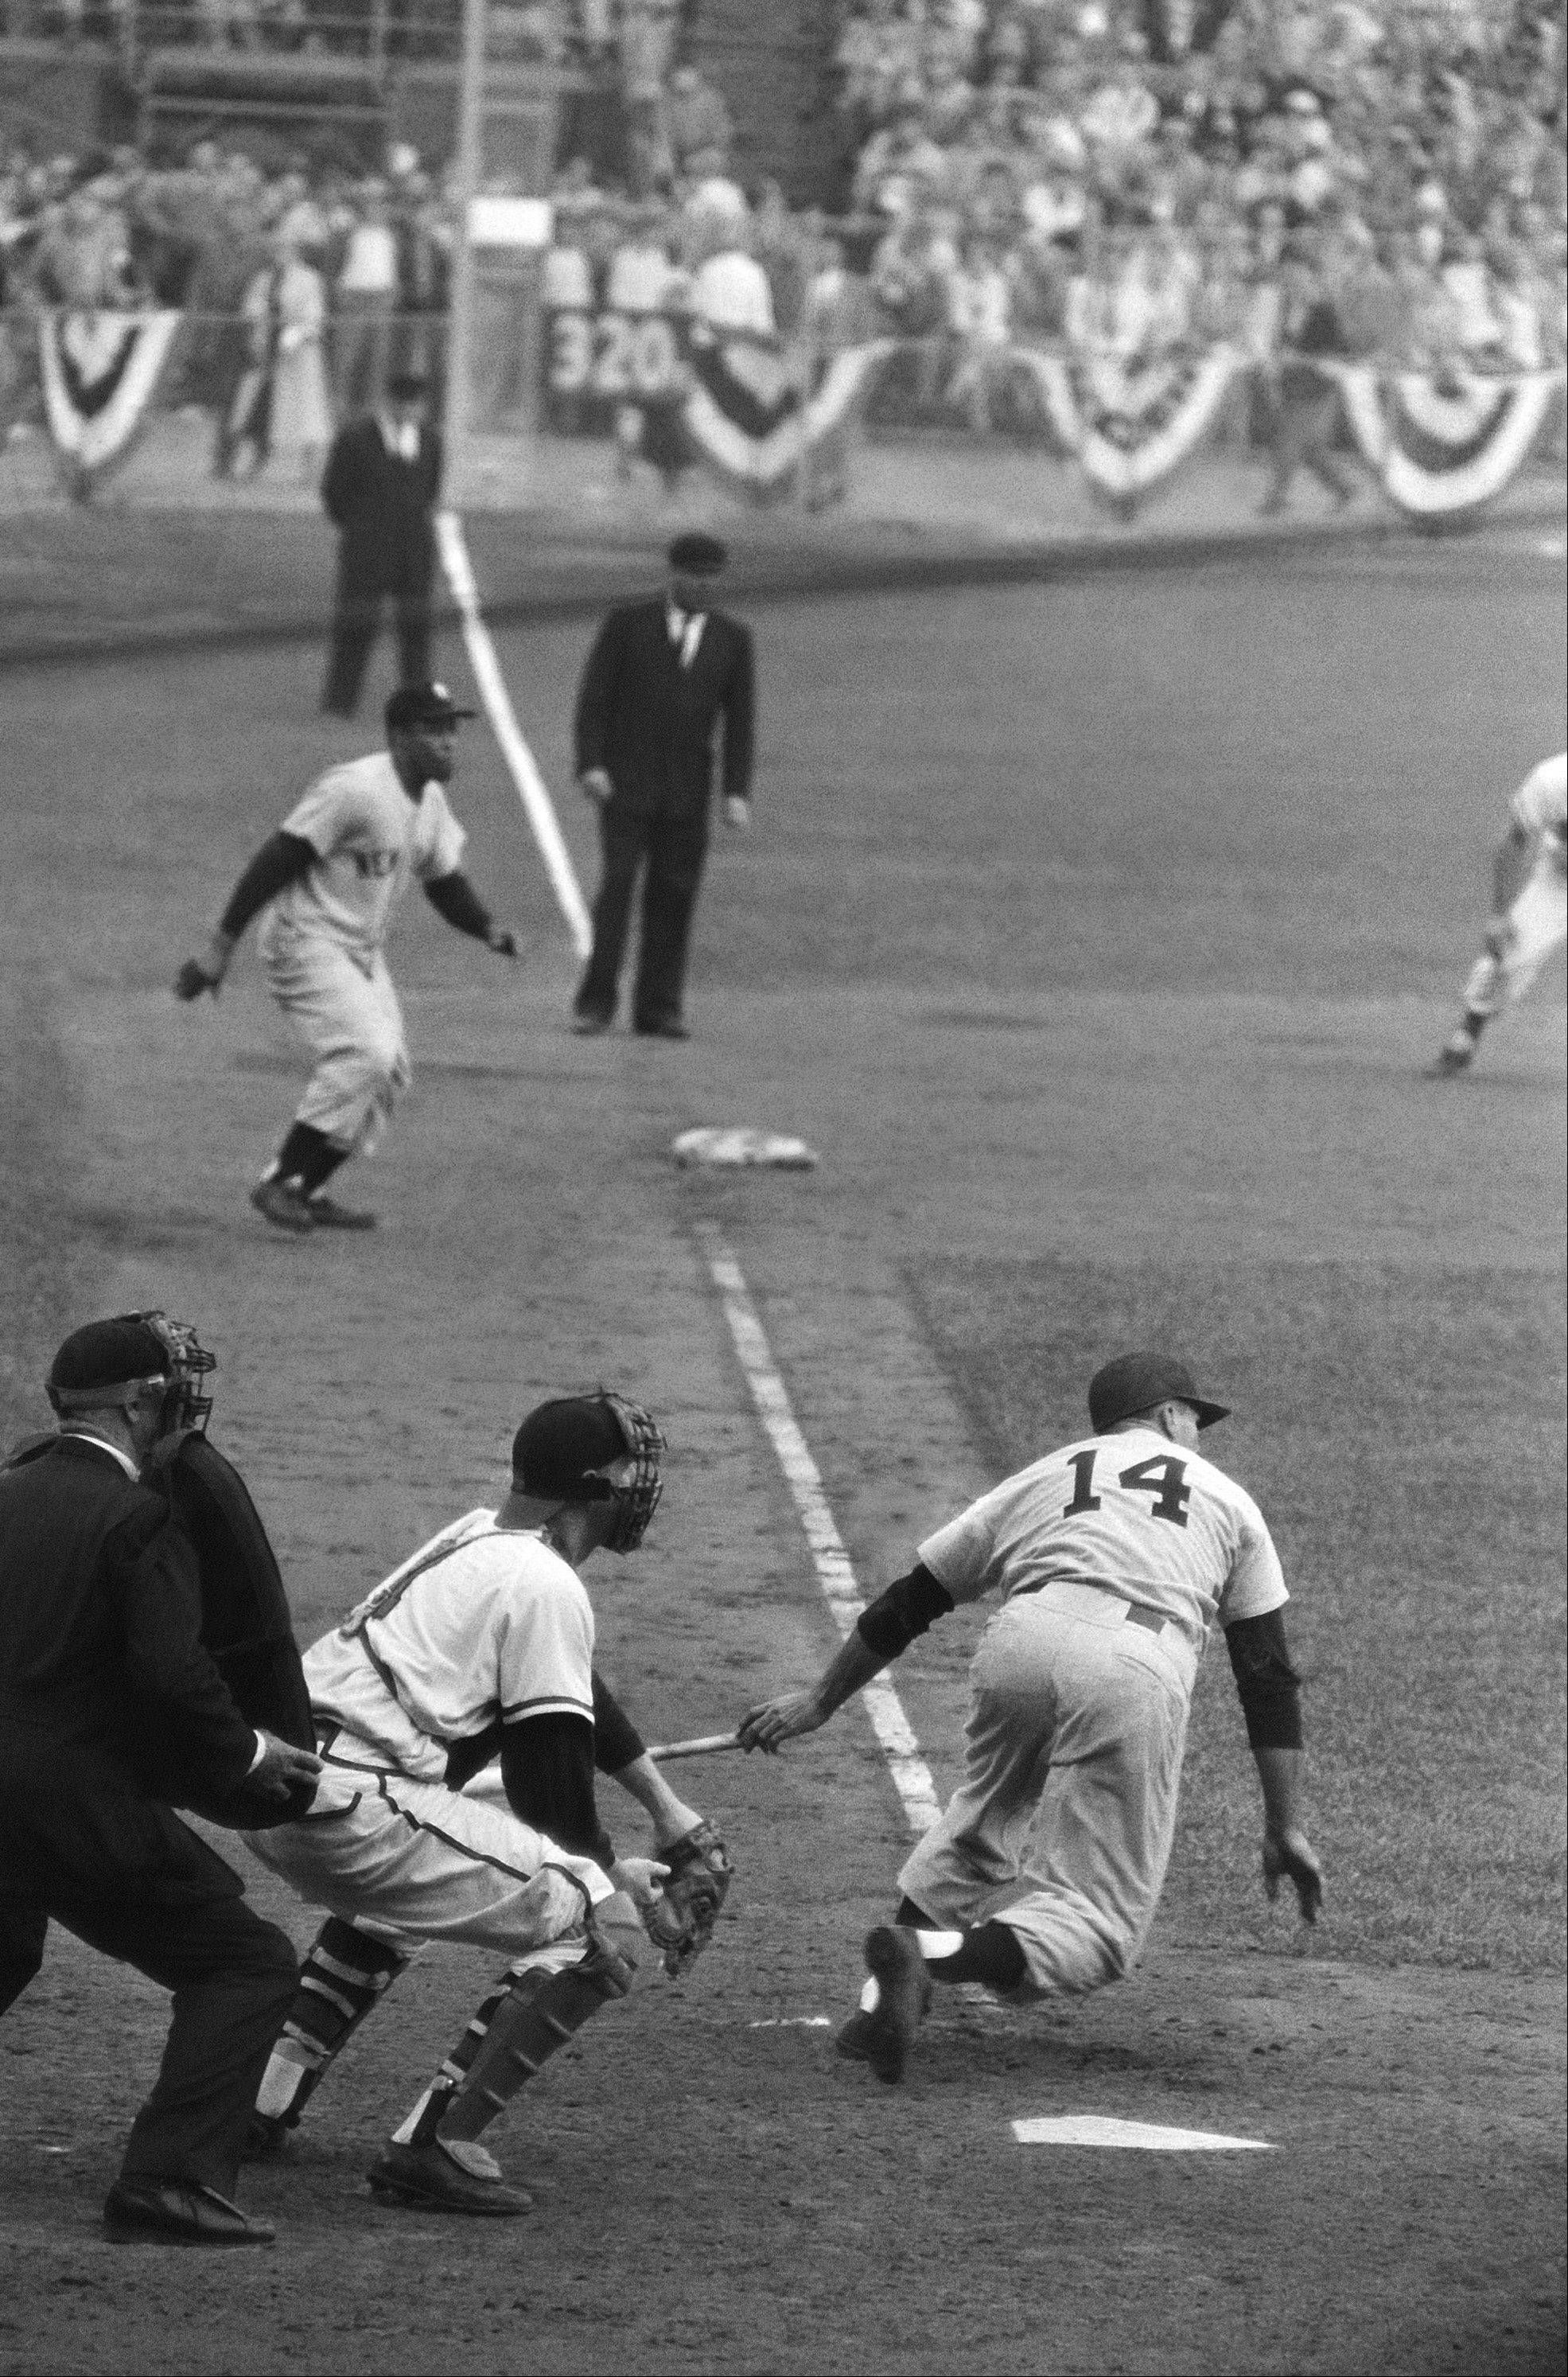 Moose Skowron (14) heads for first in 10th inning in Milwaukee, Oct. 8, 1958, after hitting single to right that gave Yanks 4-3 Series victory. Elston Howard, Yanks, is on way down third base line to score on the hit. At plate are umpire Charlie Berry and catcher Del Crandall. Umpire beyond Howard is Al Barlick.